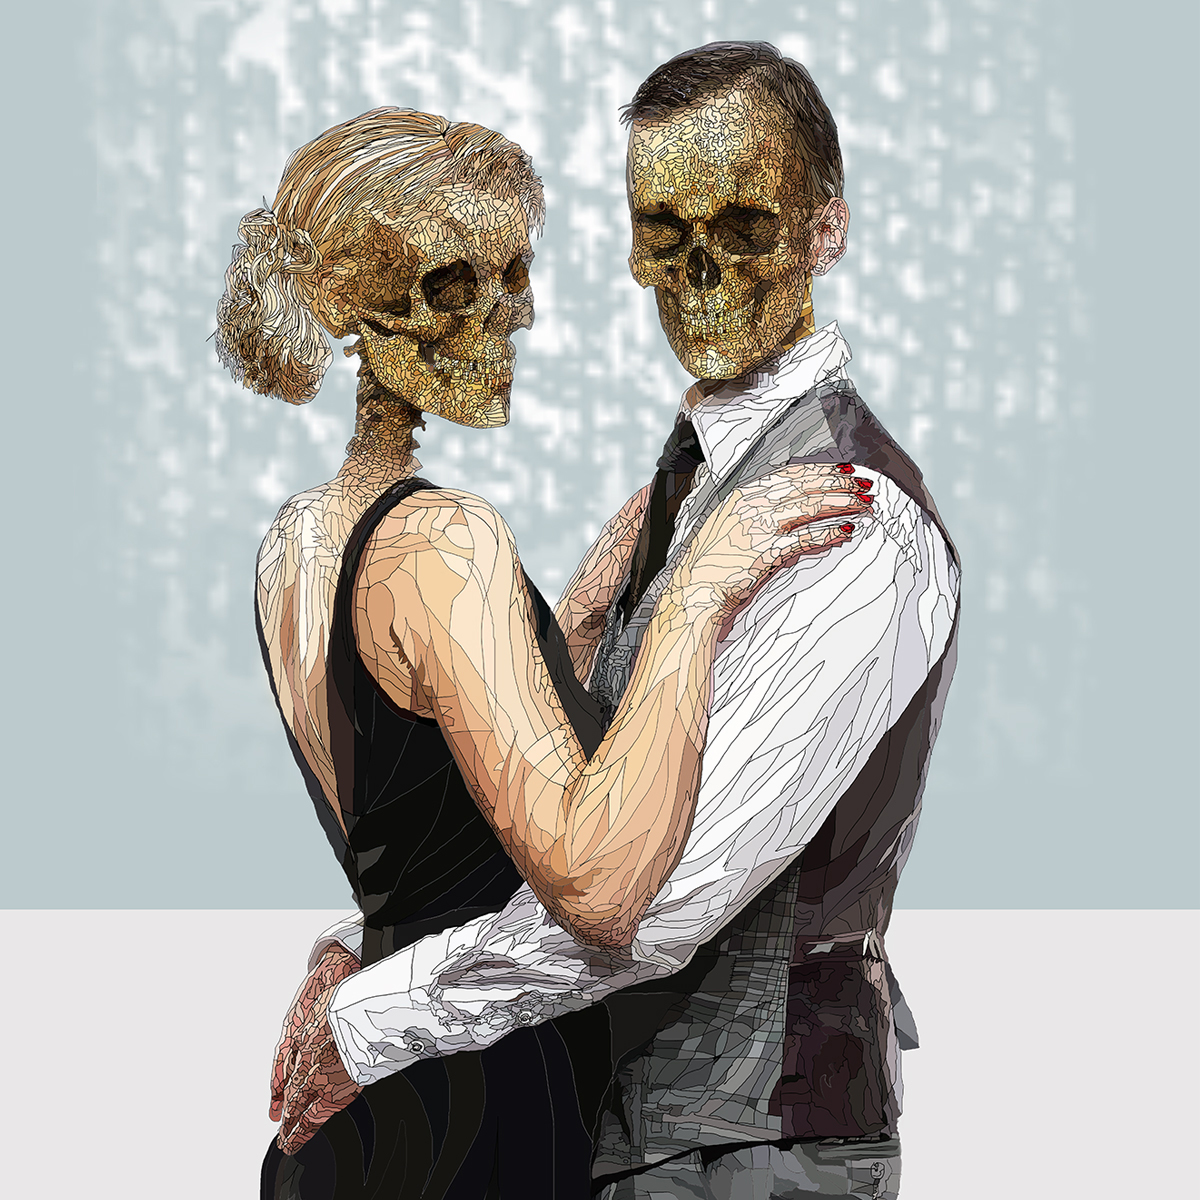 The Danse Macabre - digital artwork